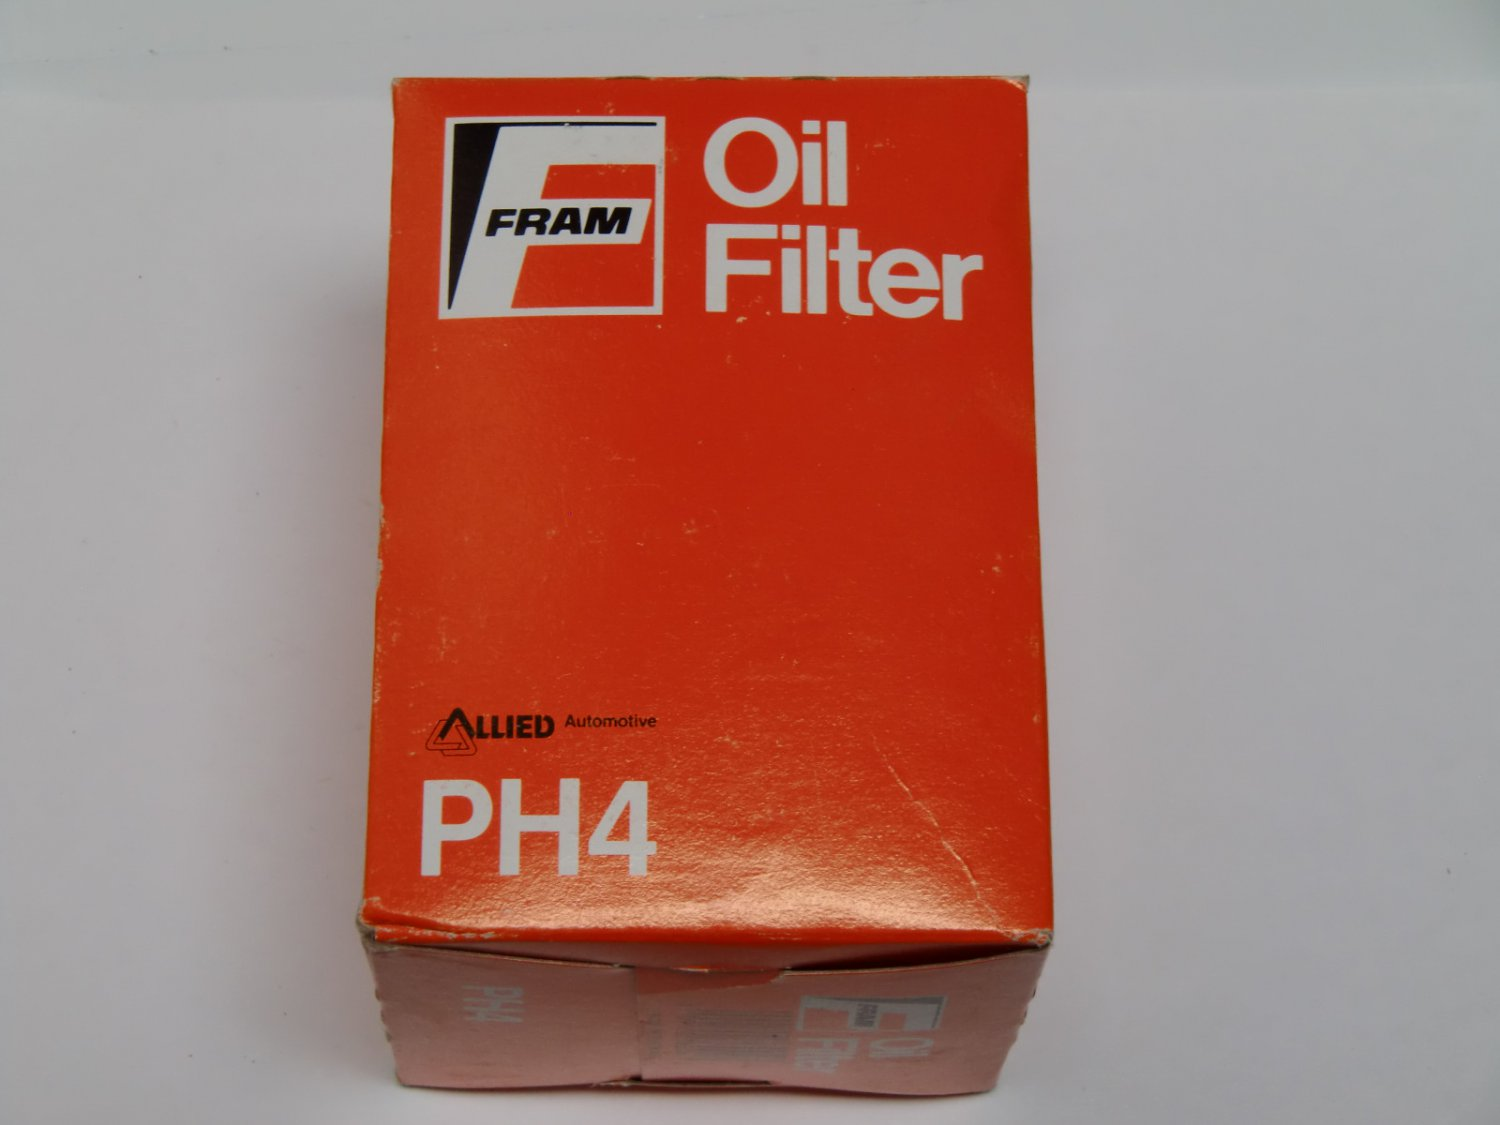 NOS Fram PH4 Oil Filter by Allied 5575425 1960 Chevrolet Corvair, model 700, 6 cyl., 4 dr